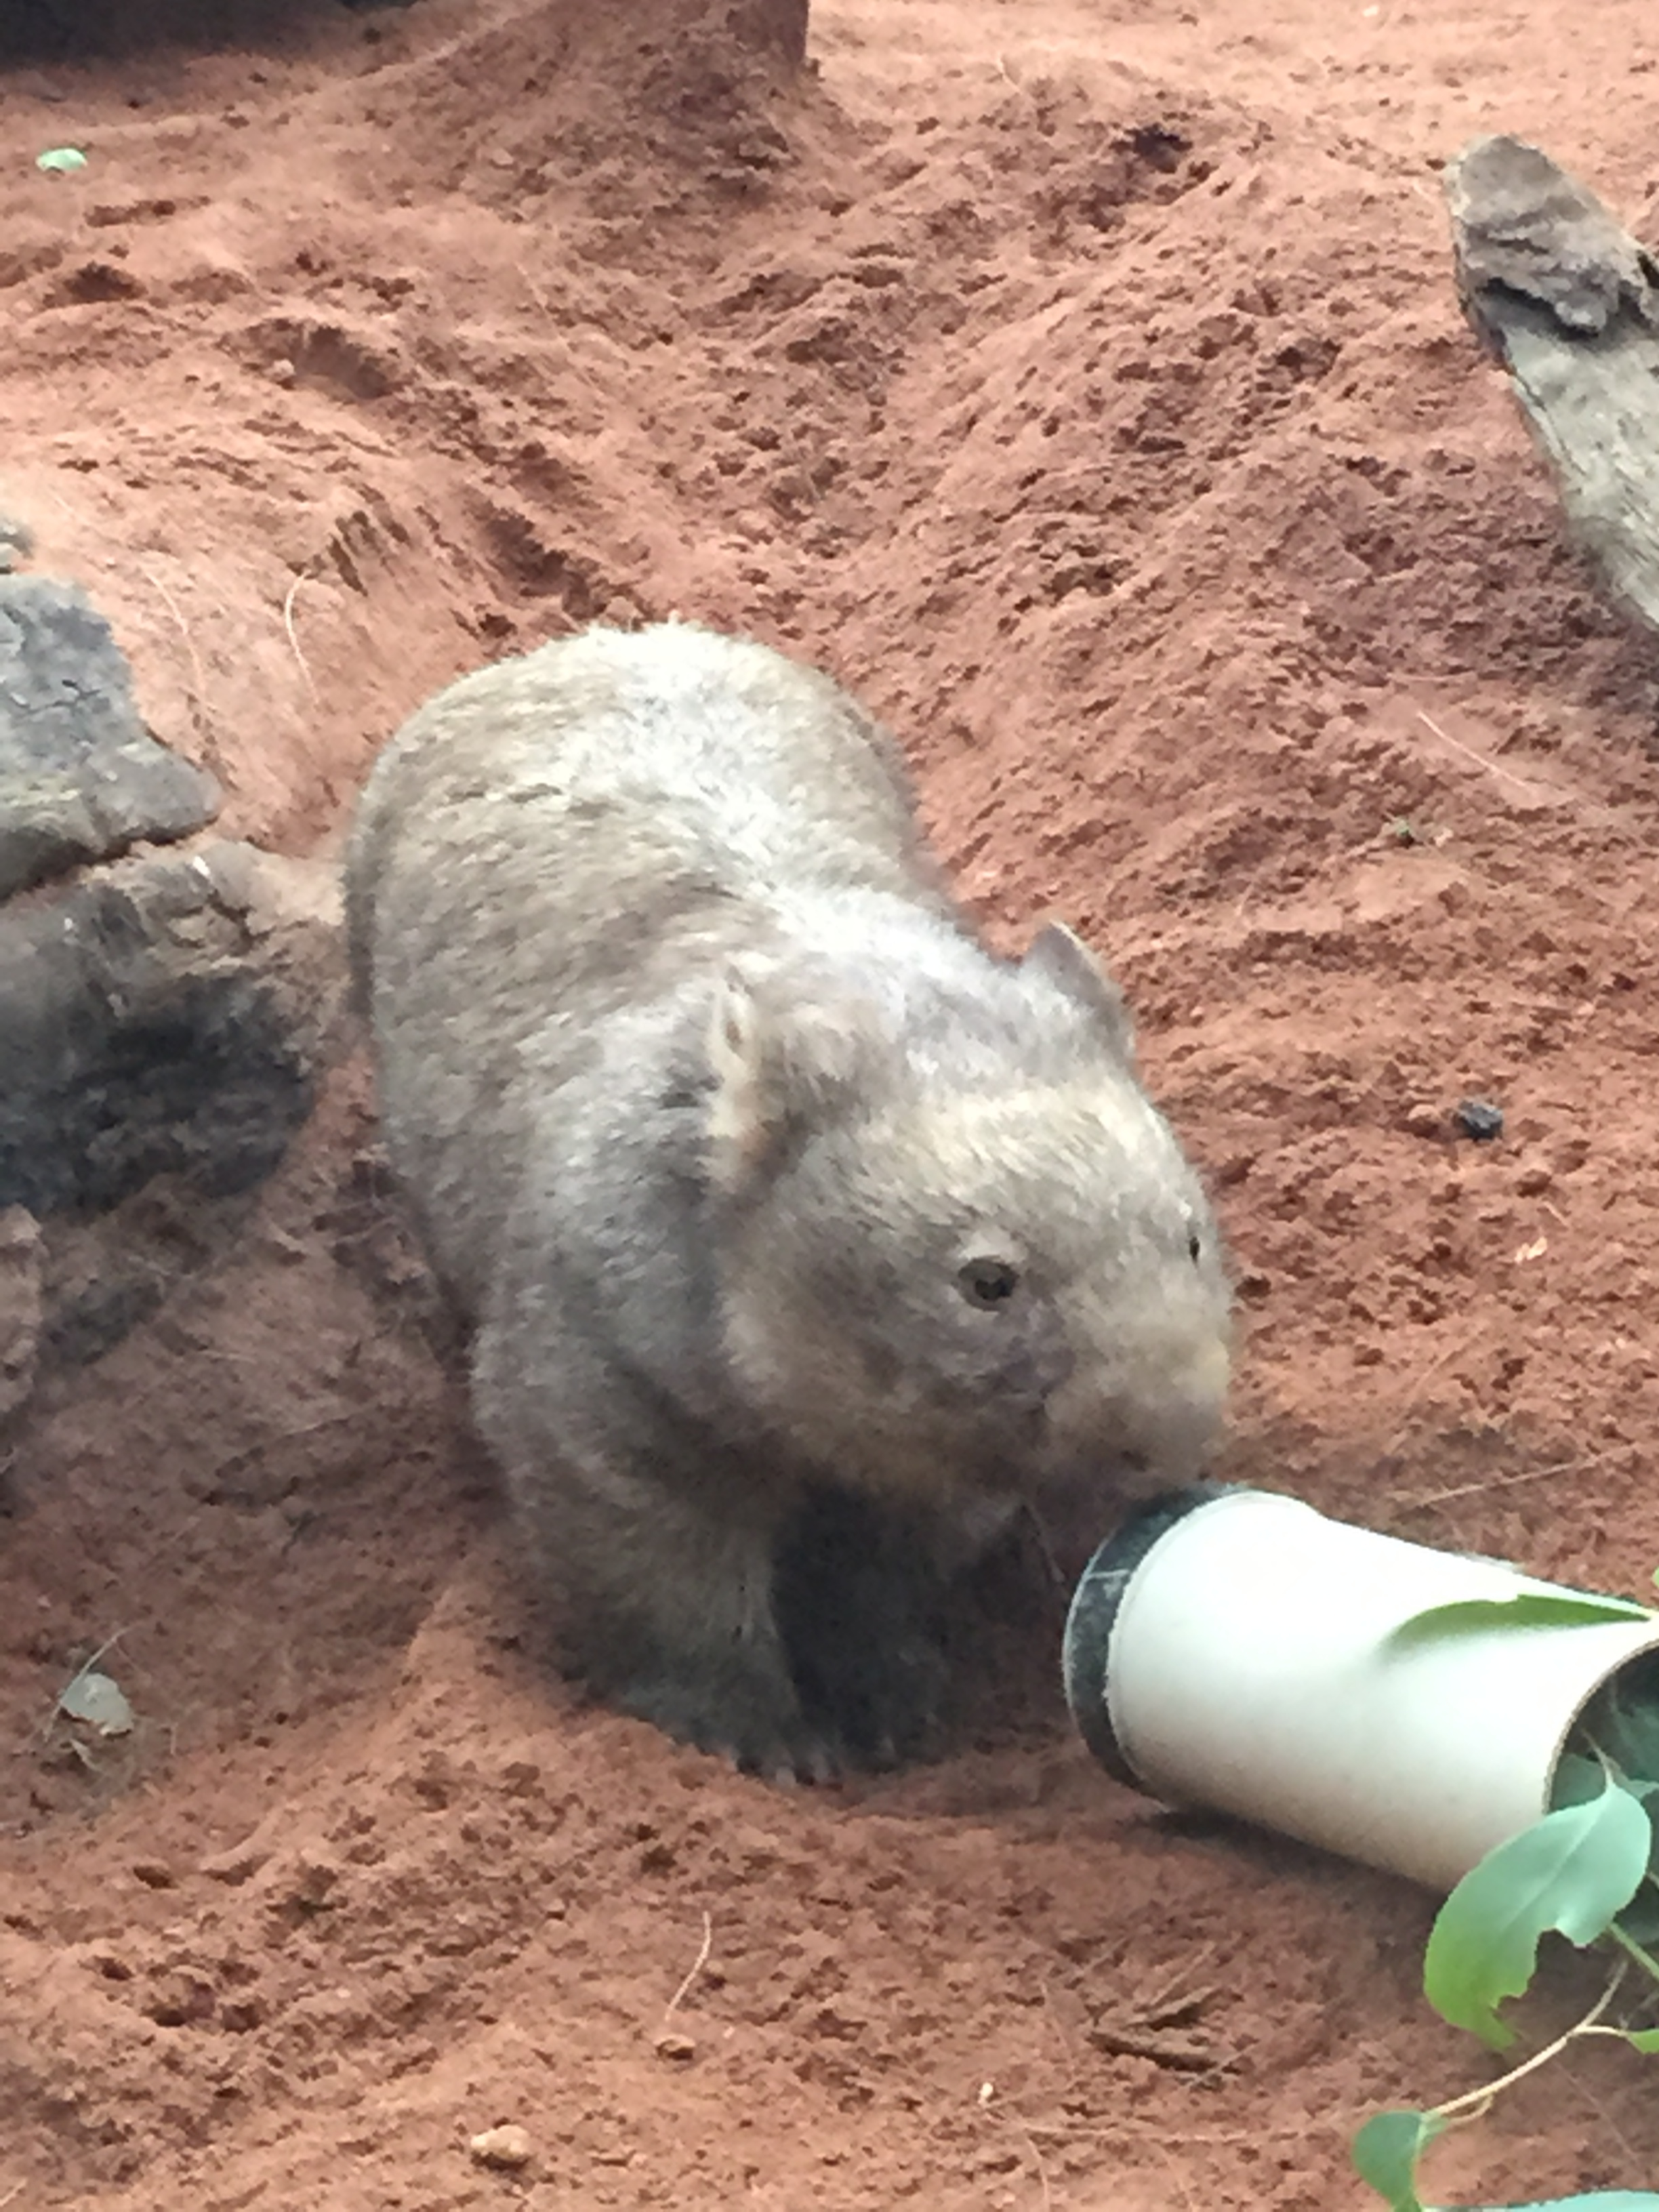 Wombat. Wombats are pretty awesome.